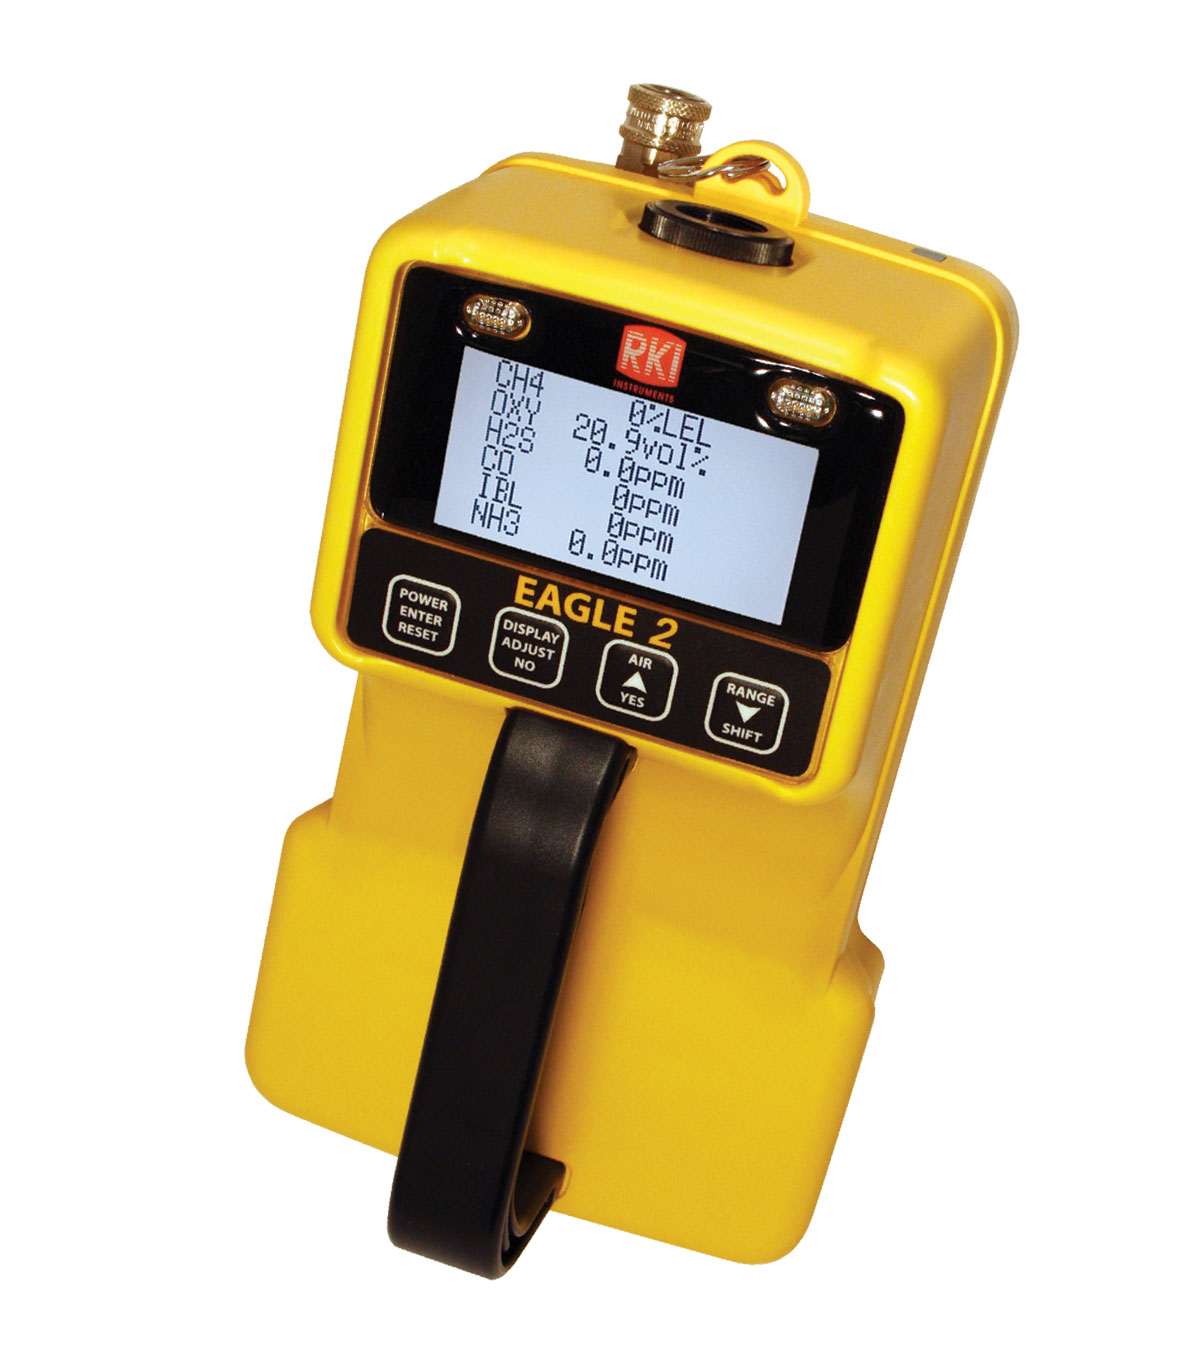 Portable Gas Detector : Gas monitor eagle with pid sample draw